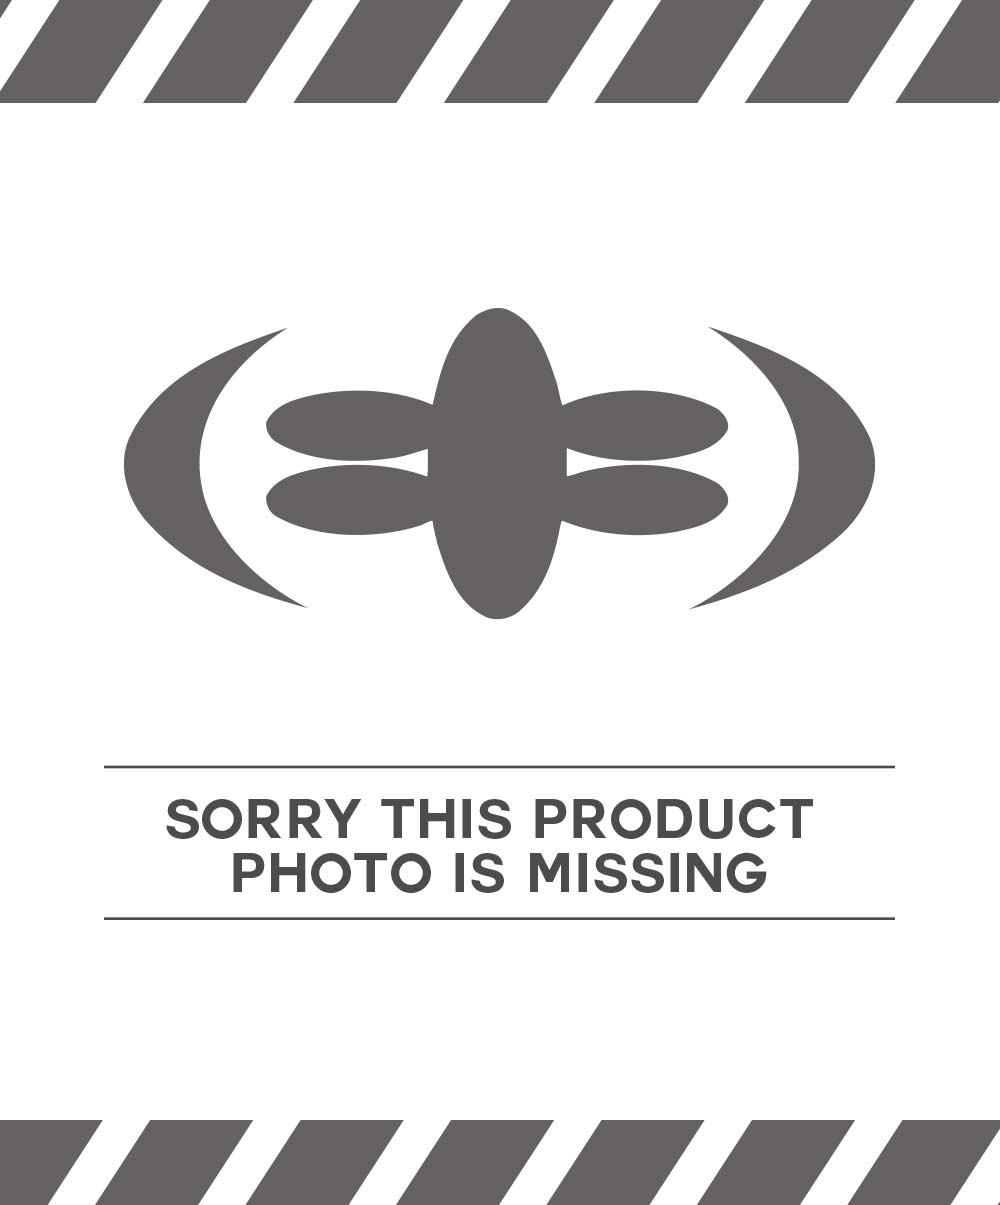 Spitfire. Stay Lit Glow in the Dark Classic Formula 4. 99a.